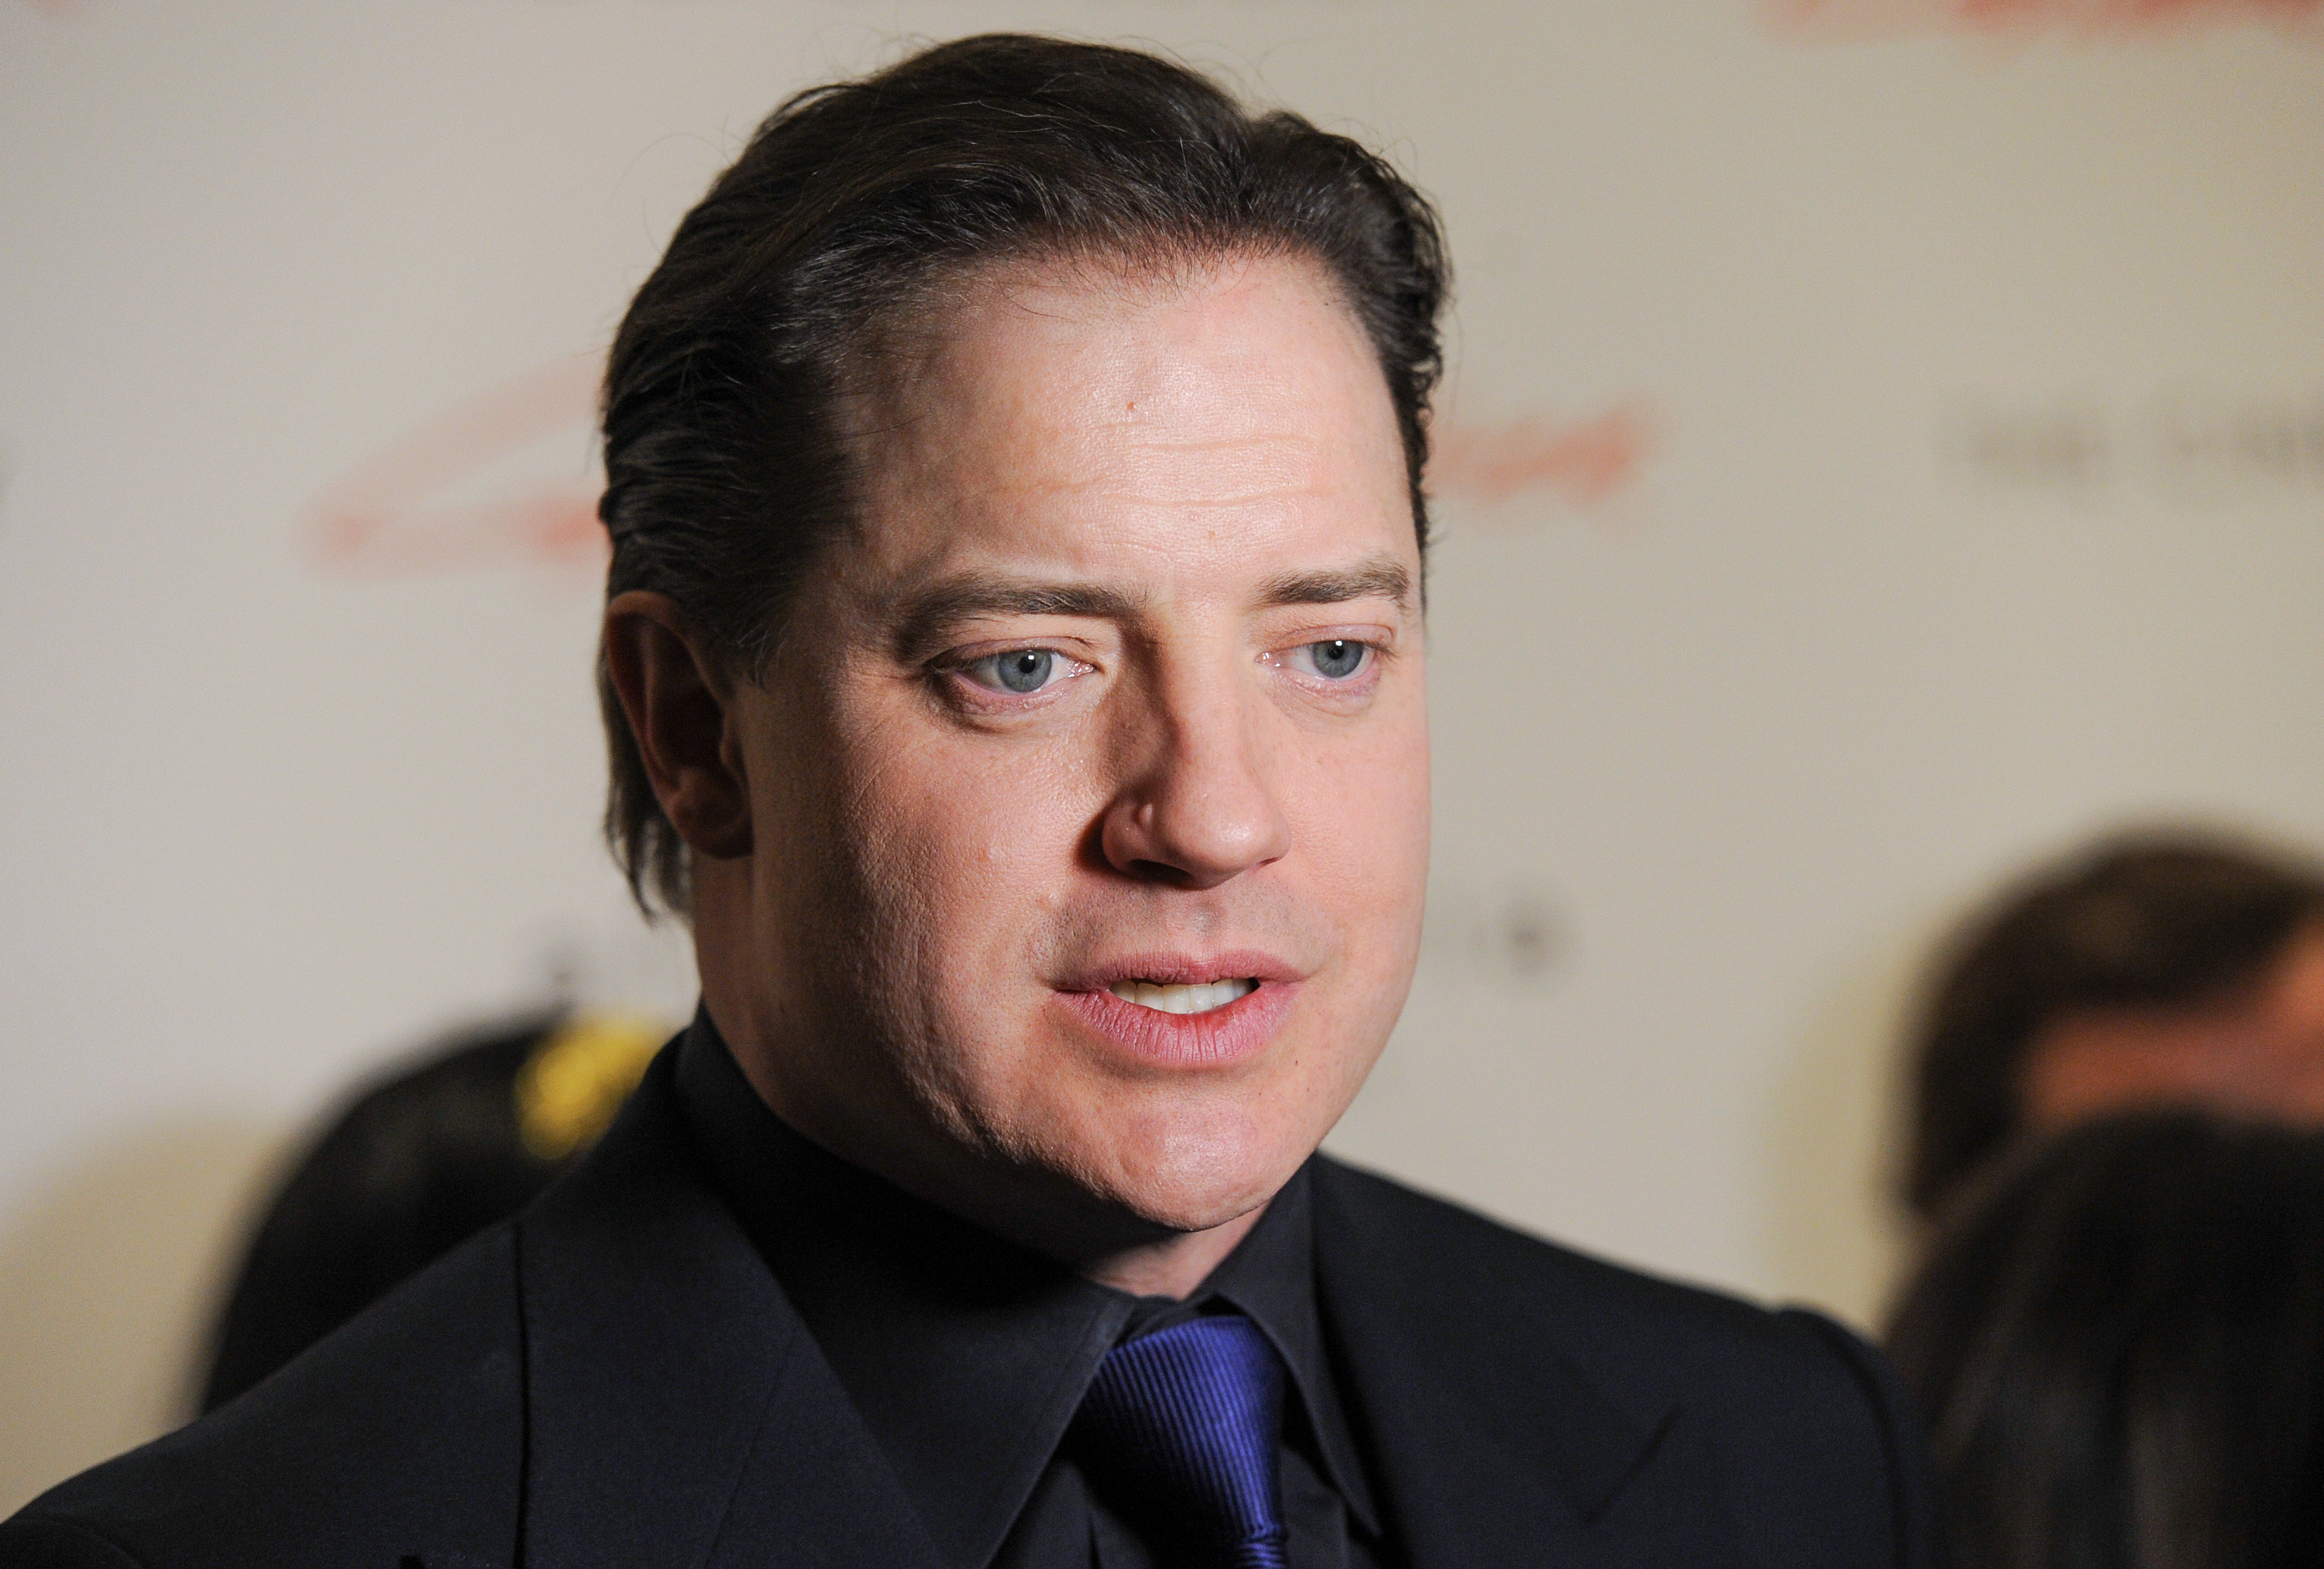 CHEEK': Brendan Fraser says ex-HFPA president groped him